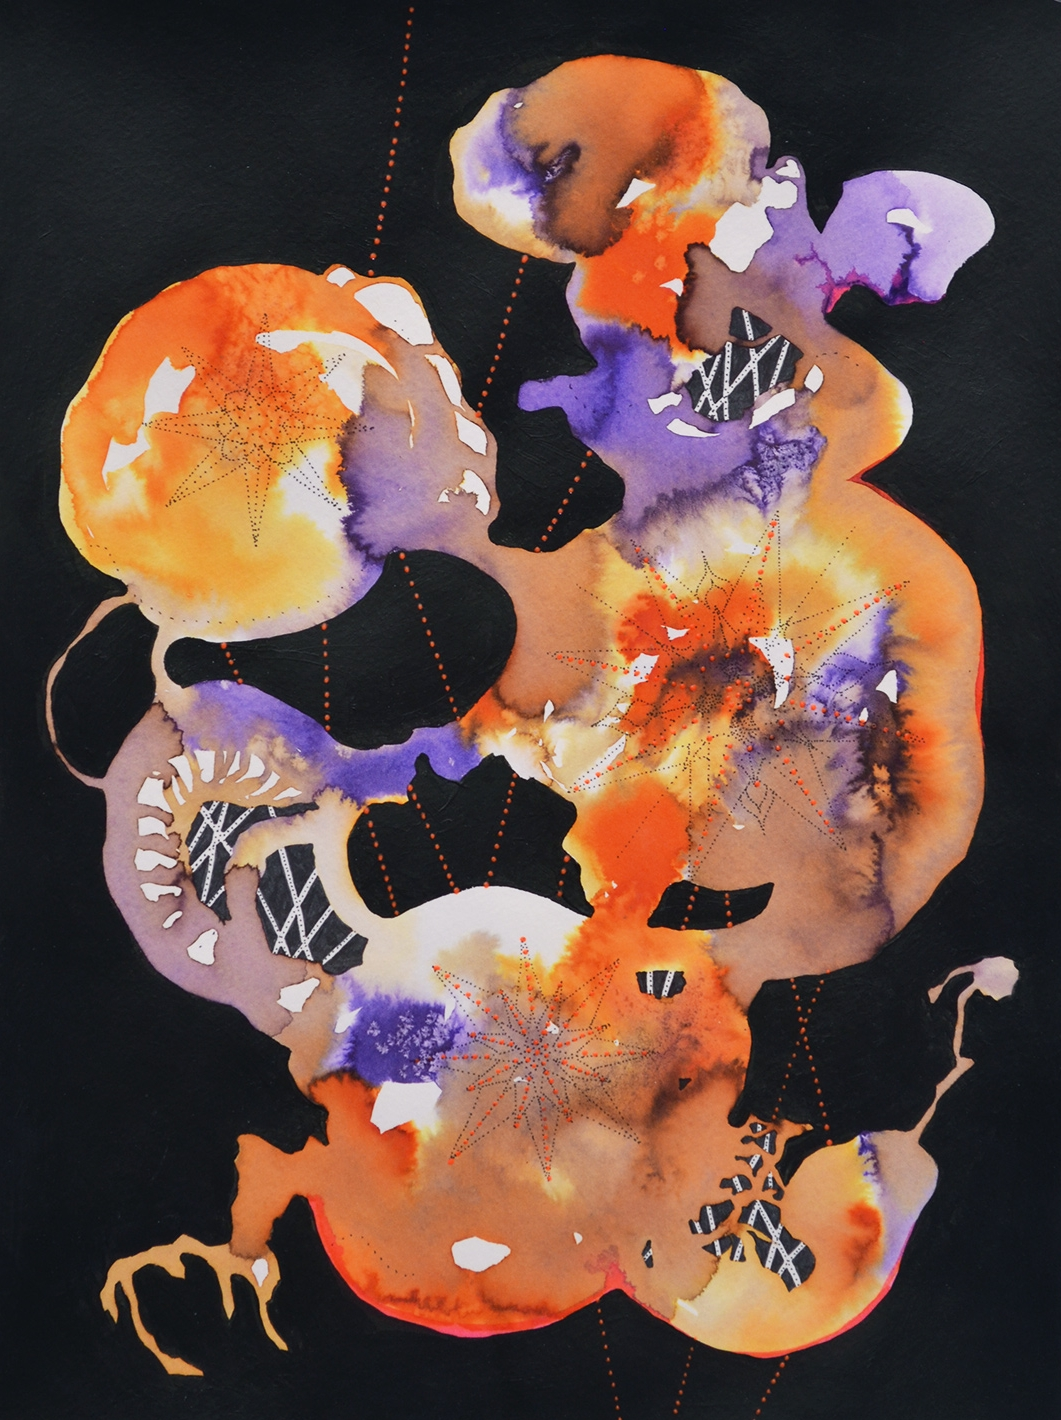 """Binary Fission, I,2014 Concentrated watercolors, acrylic paint, and ink on paper 15"""" x 11"""""""